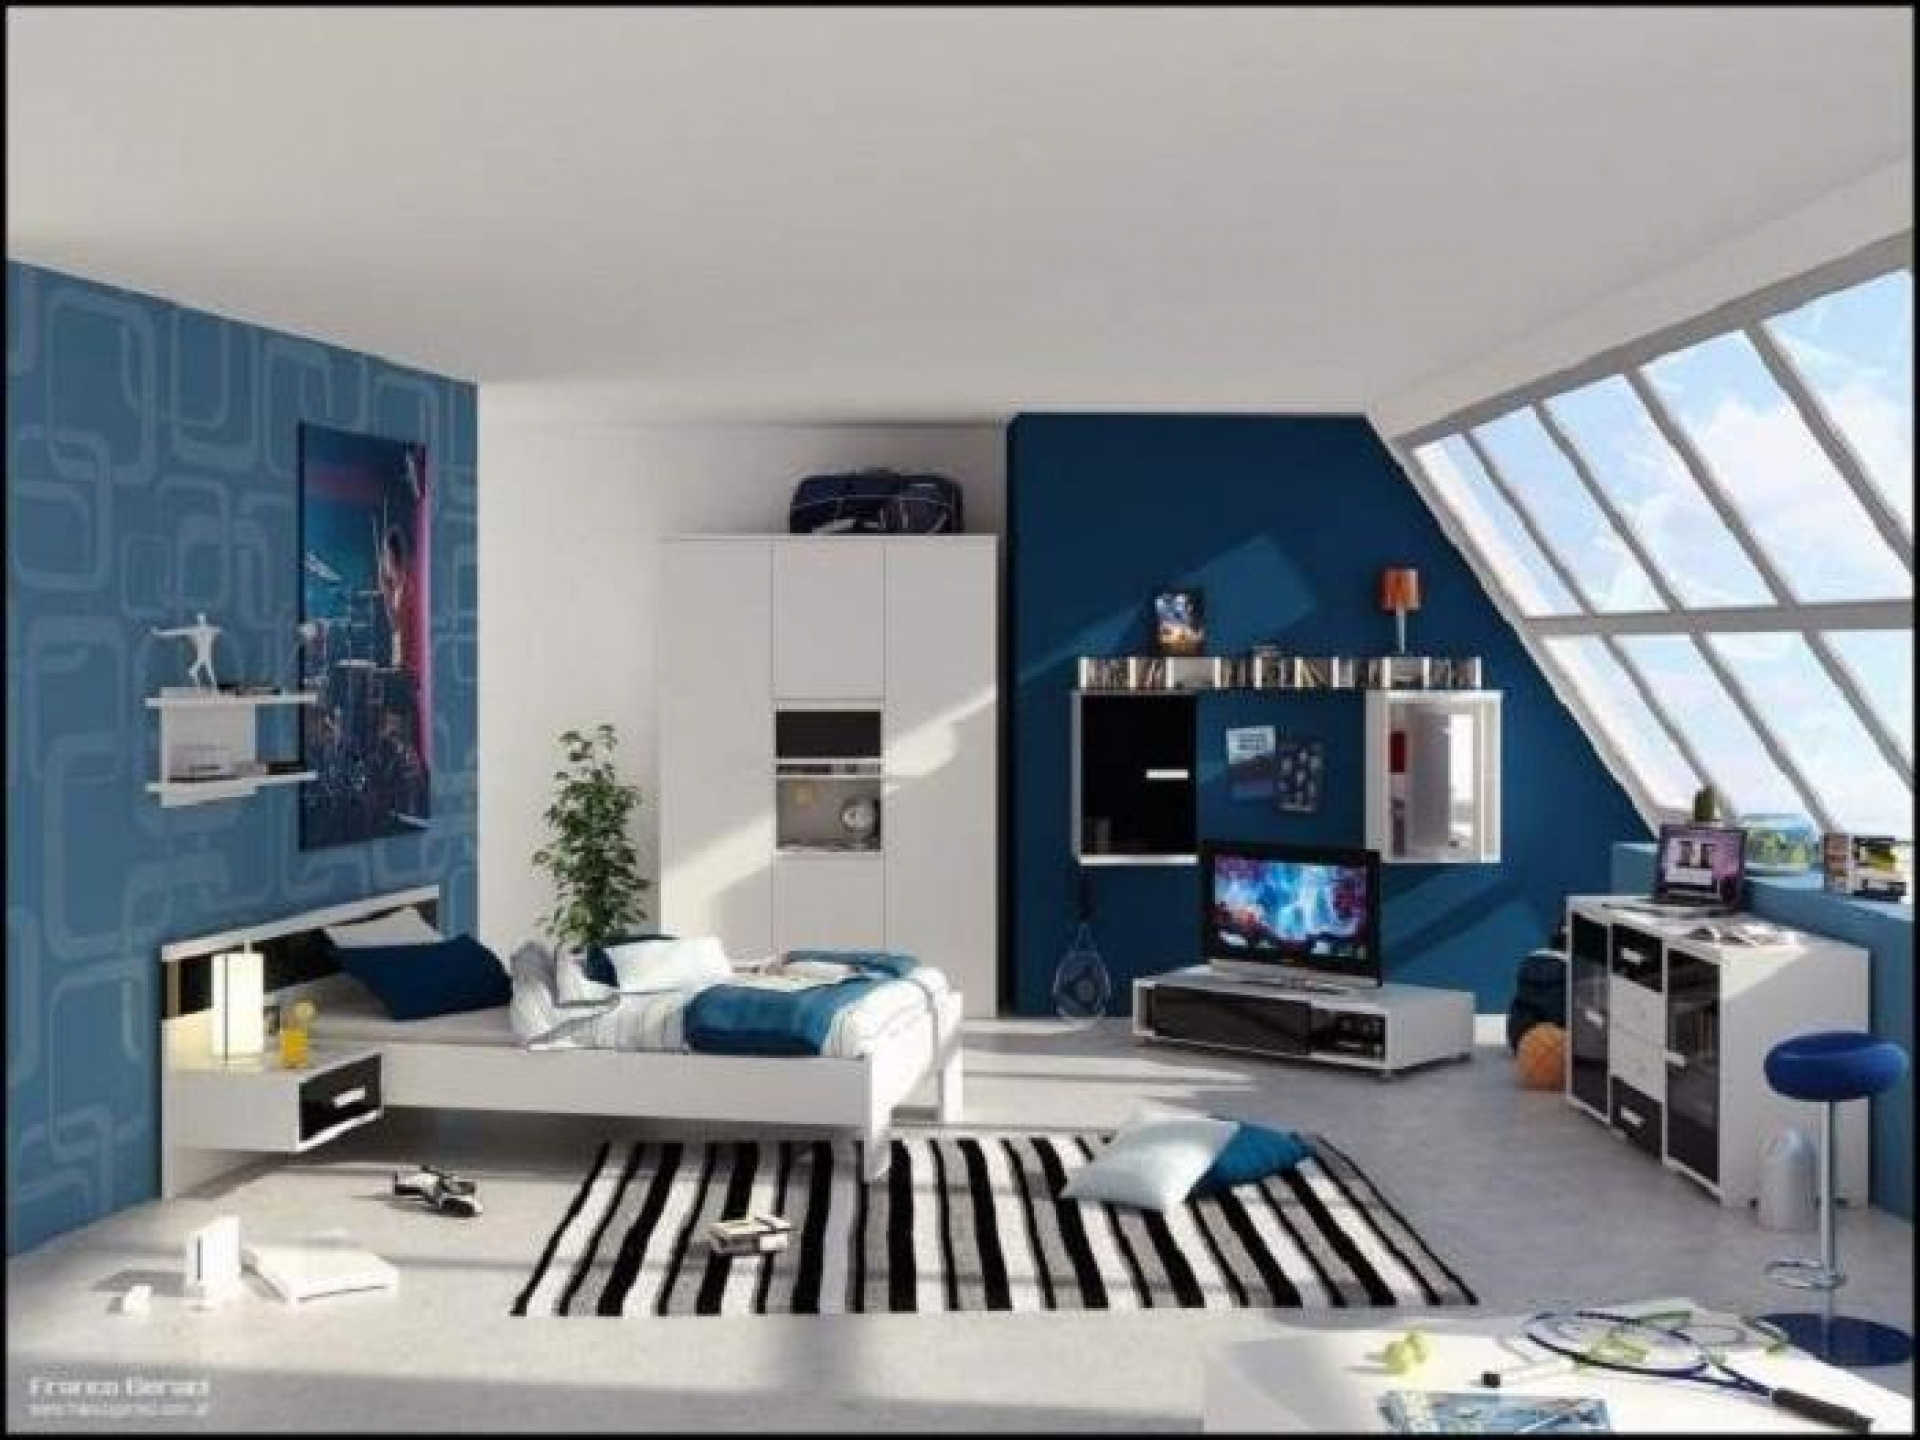 interior-design-white-and-blue-color-combination-of-living-room-cool-wall-paint-interior-designs-with-glass-dormer-windows-ceramic-flooring-tile-in-loft-bedroom-